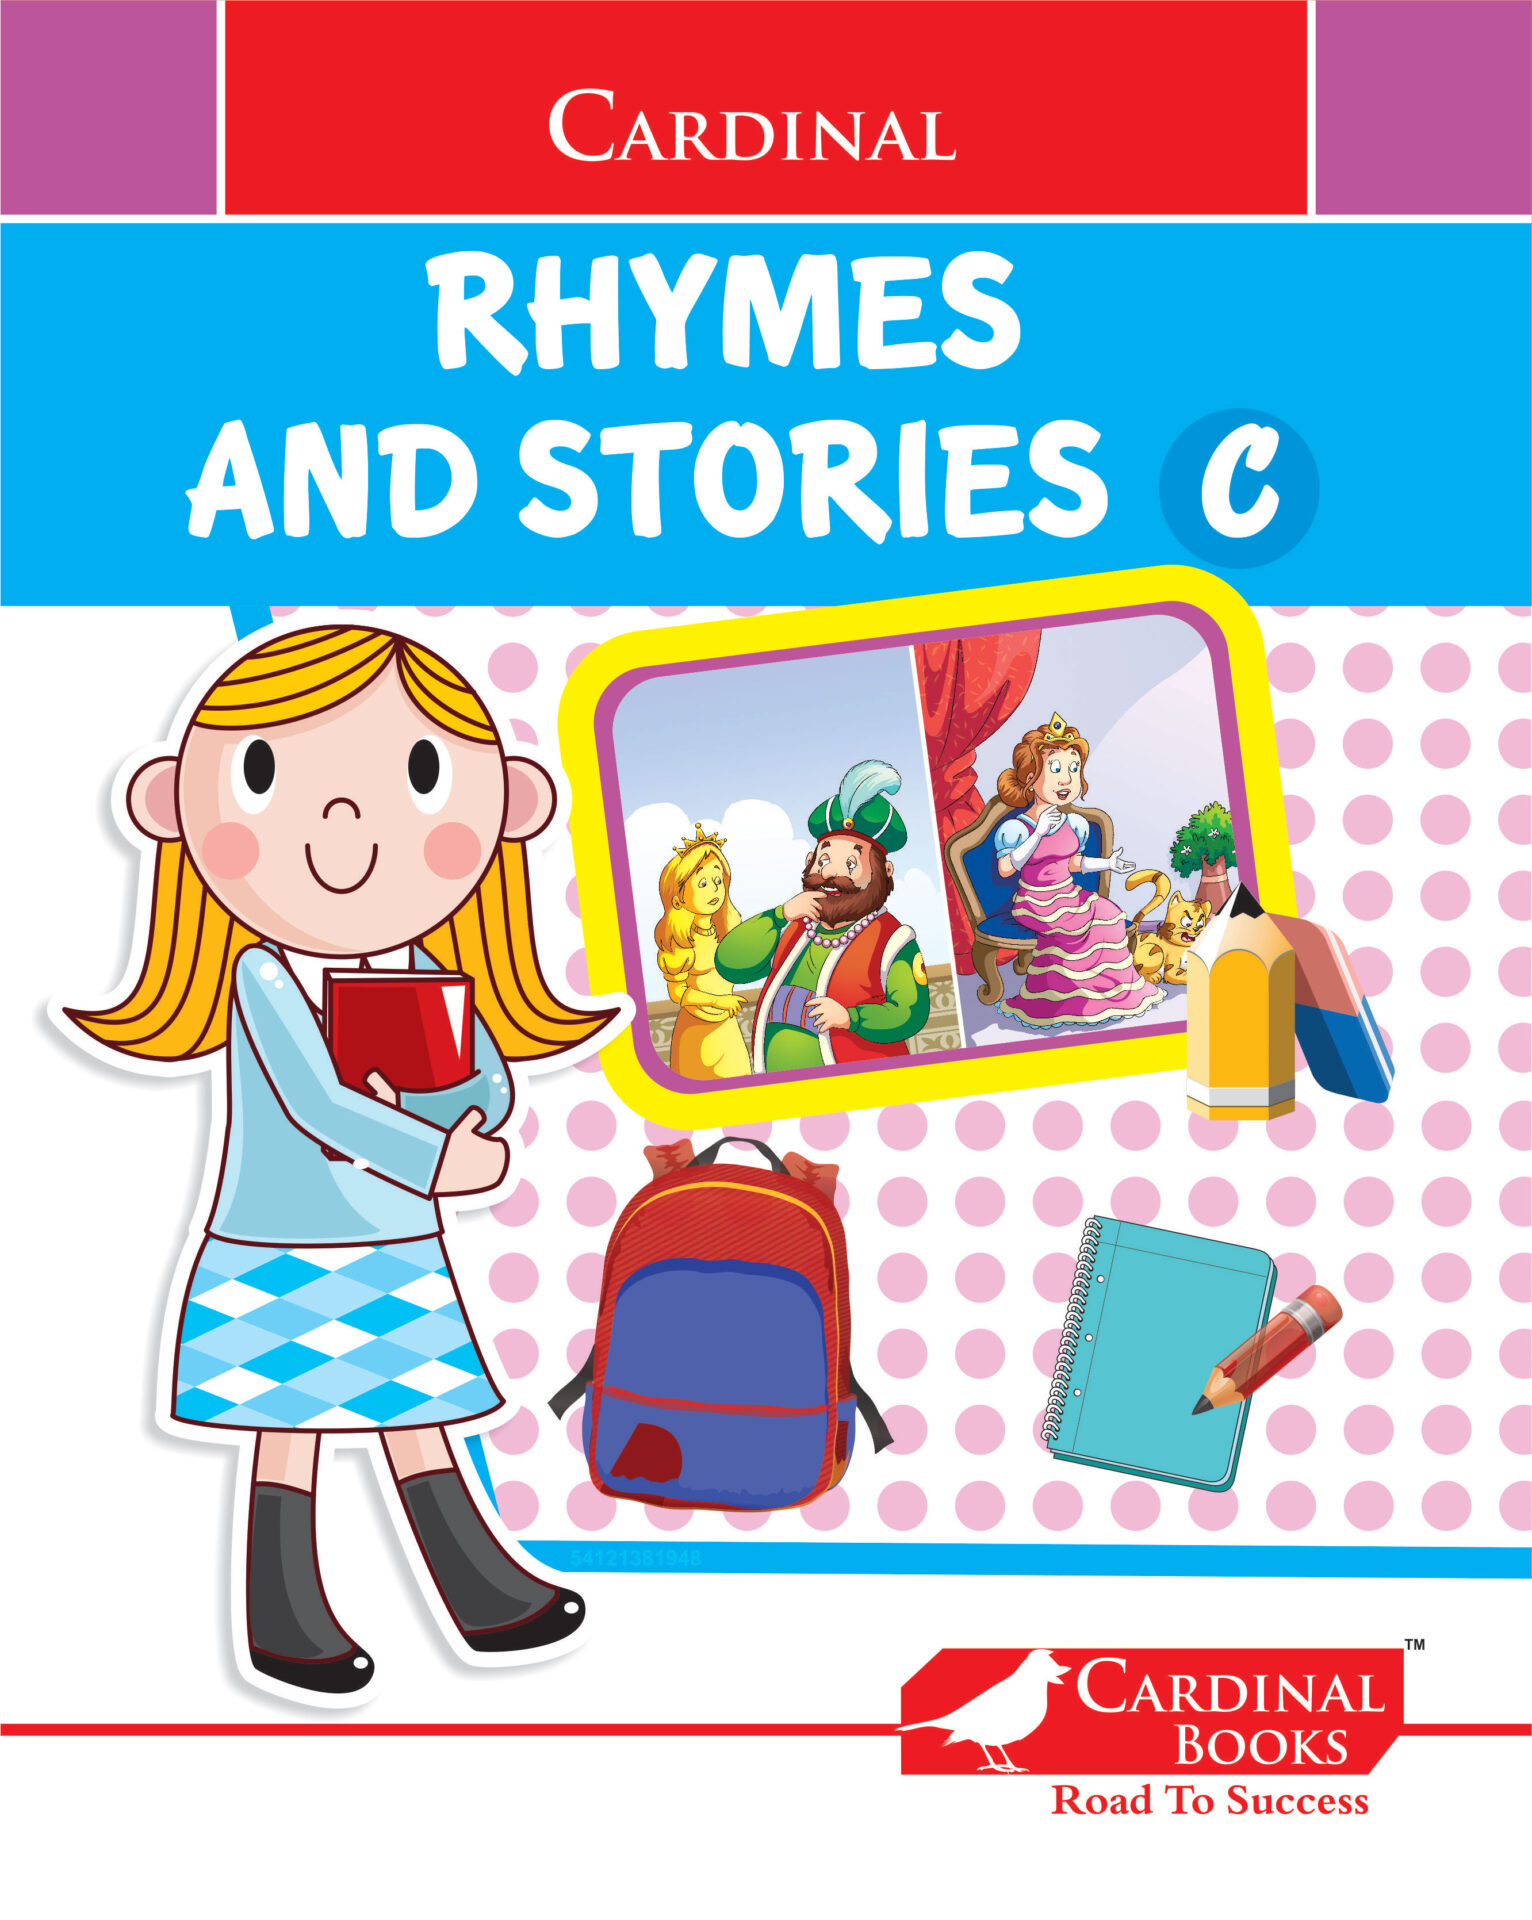 Cardinal Rhymes and Stories C 1 1